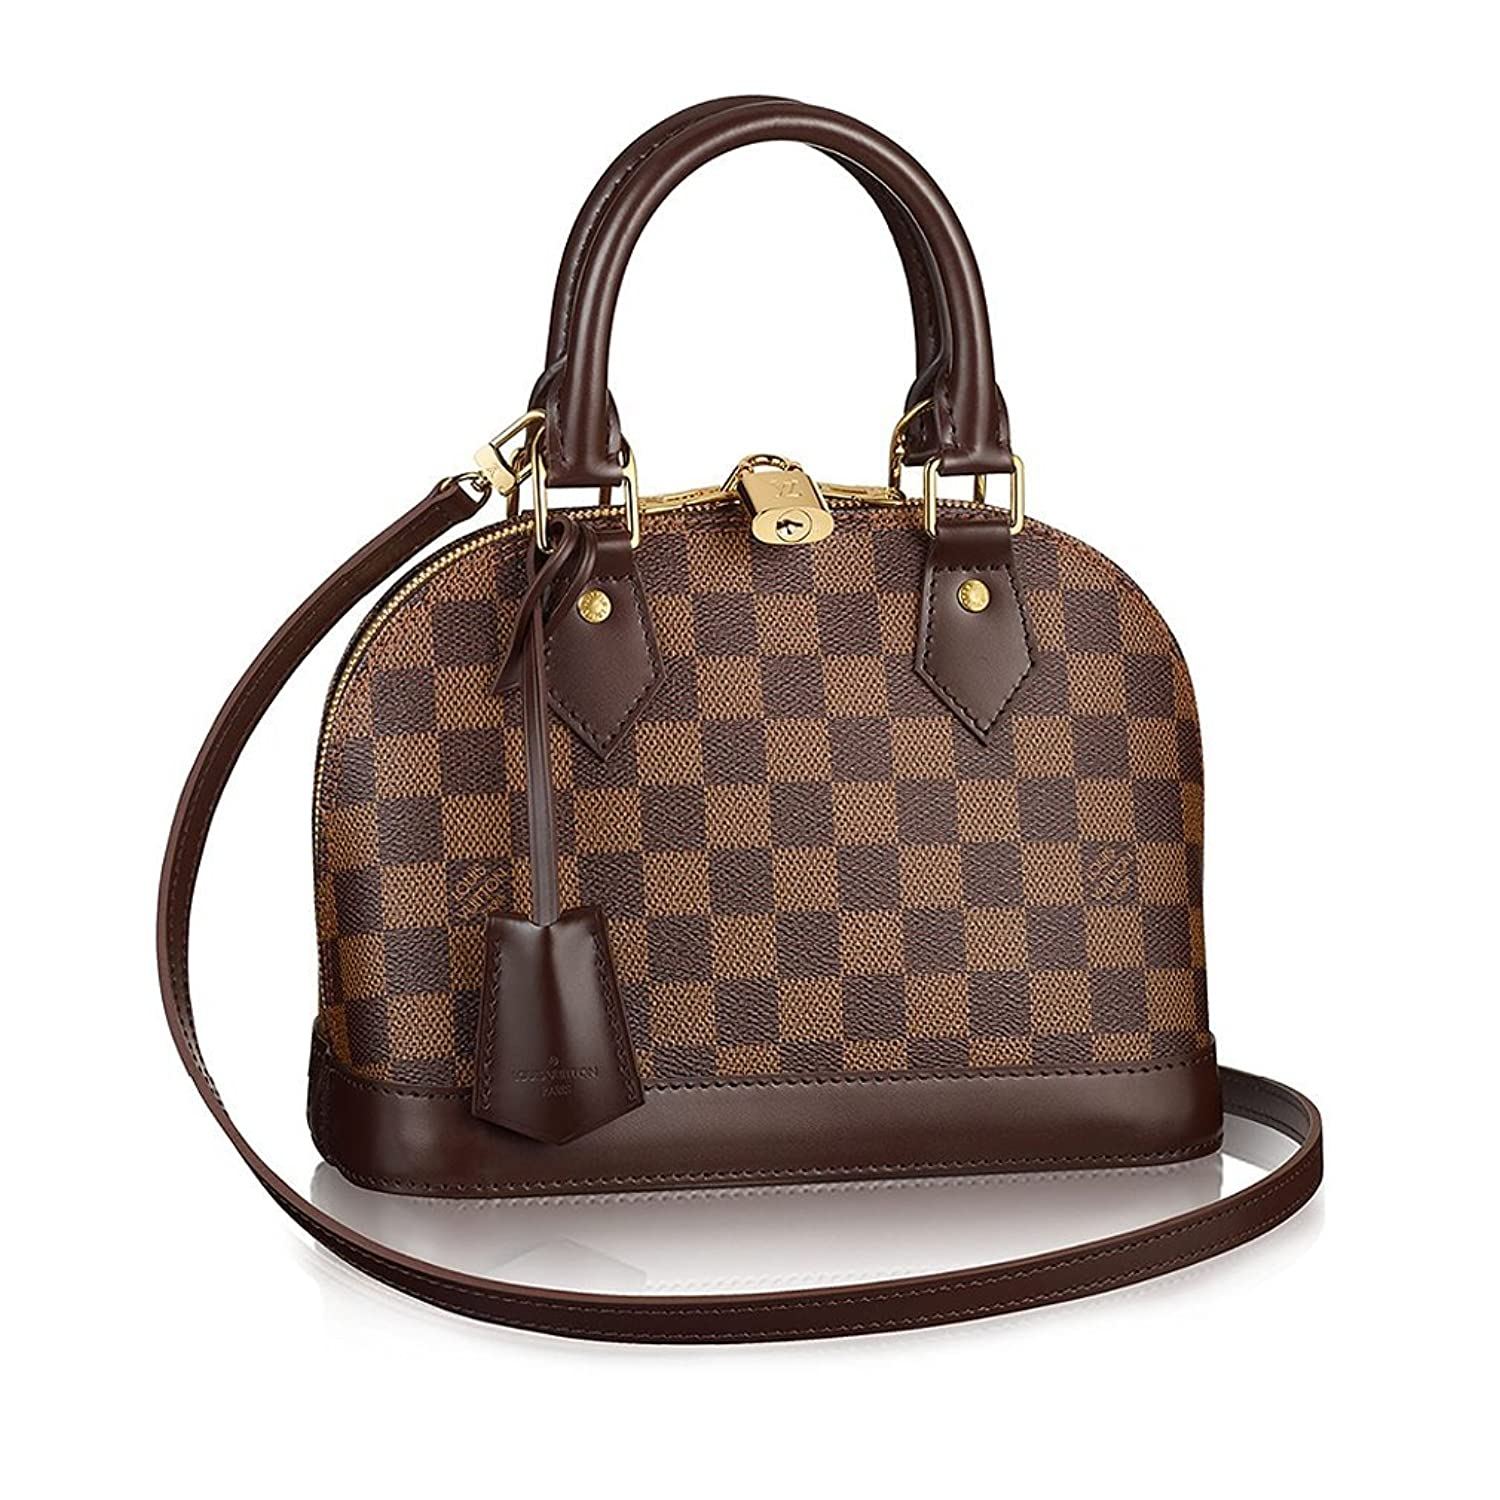 Authentic Louis Vuitton DamierアルマBBクロスボディハンドバッグArticle : n41221?Made in France